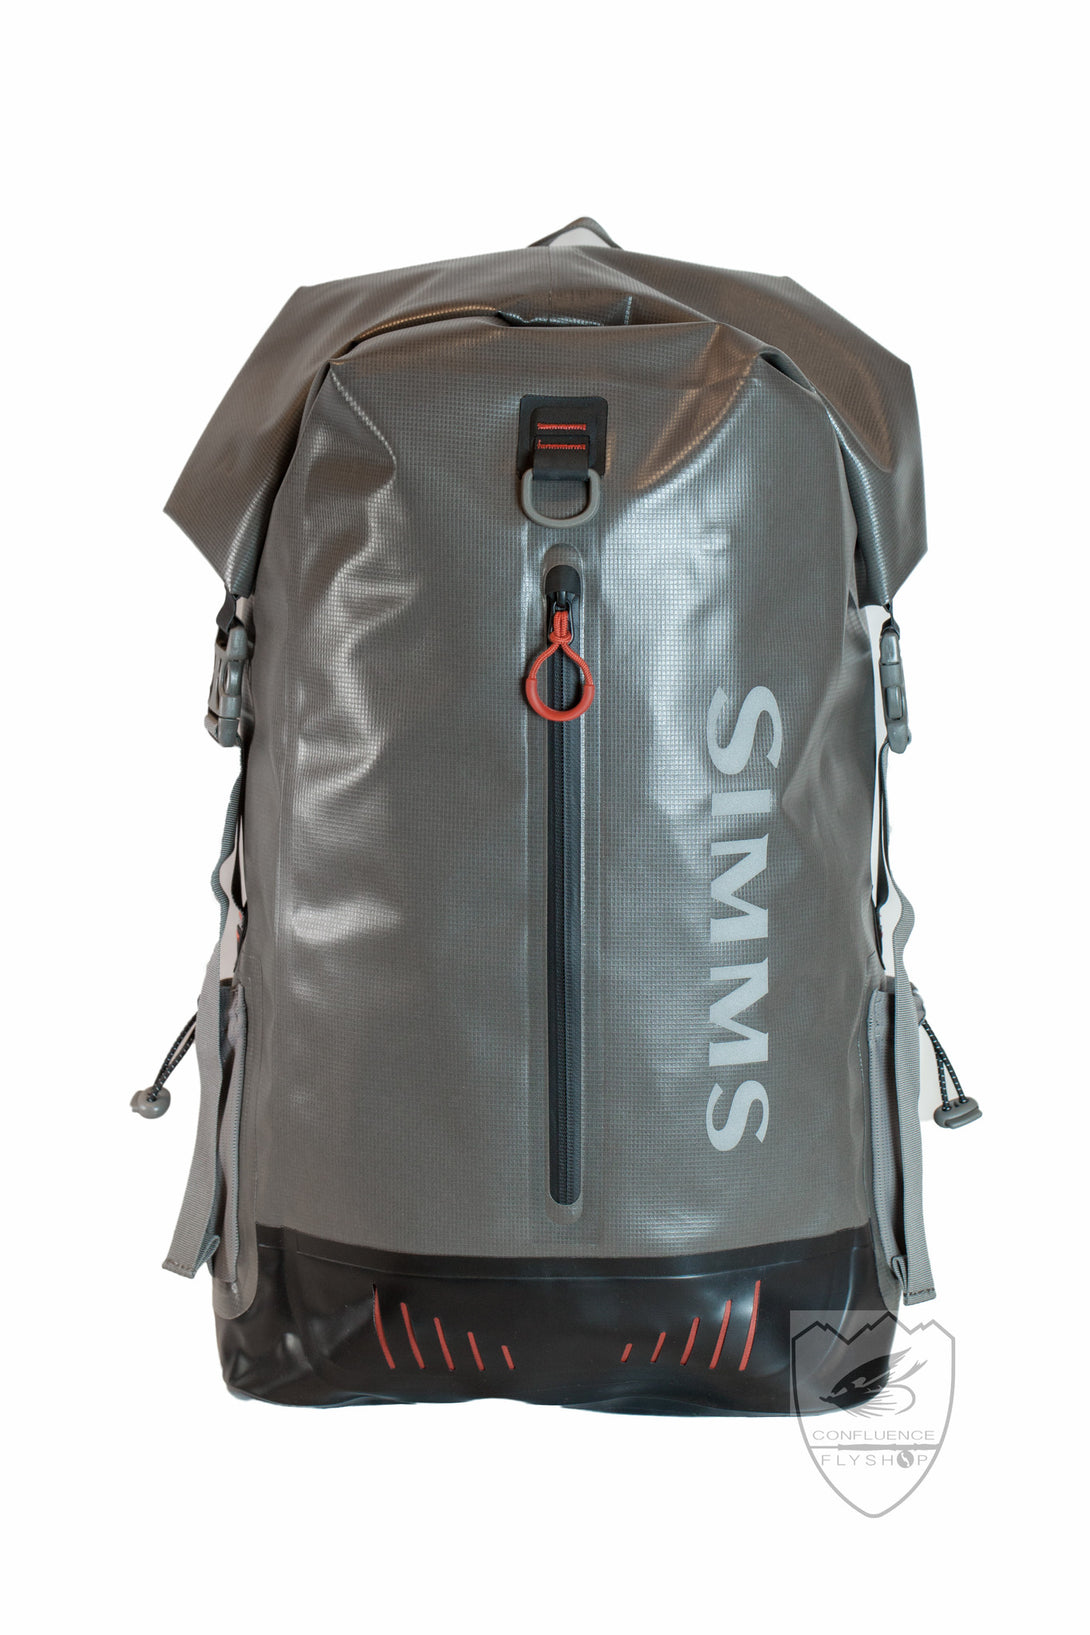 Simms Dry Creek Backpack,Packs,Simms-Confluence Fly Shop